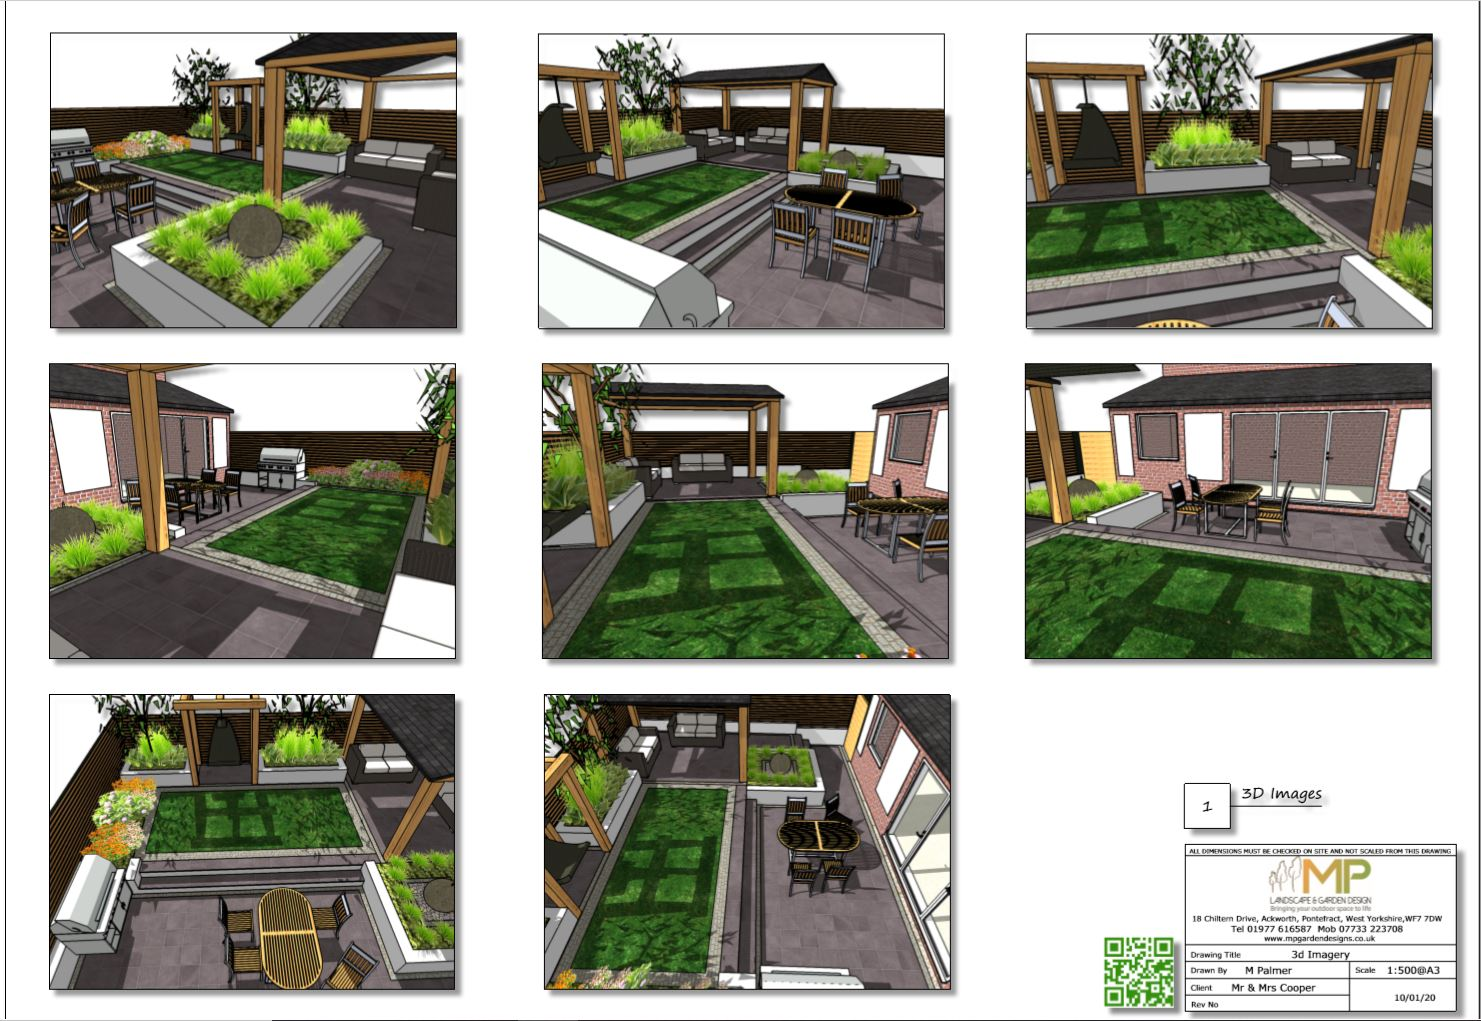 3, Colour garden layout plan 3D images for a rear garden in Pontefract.